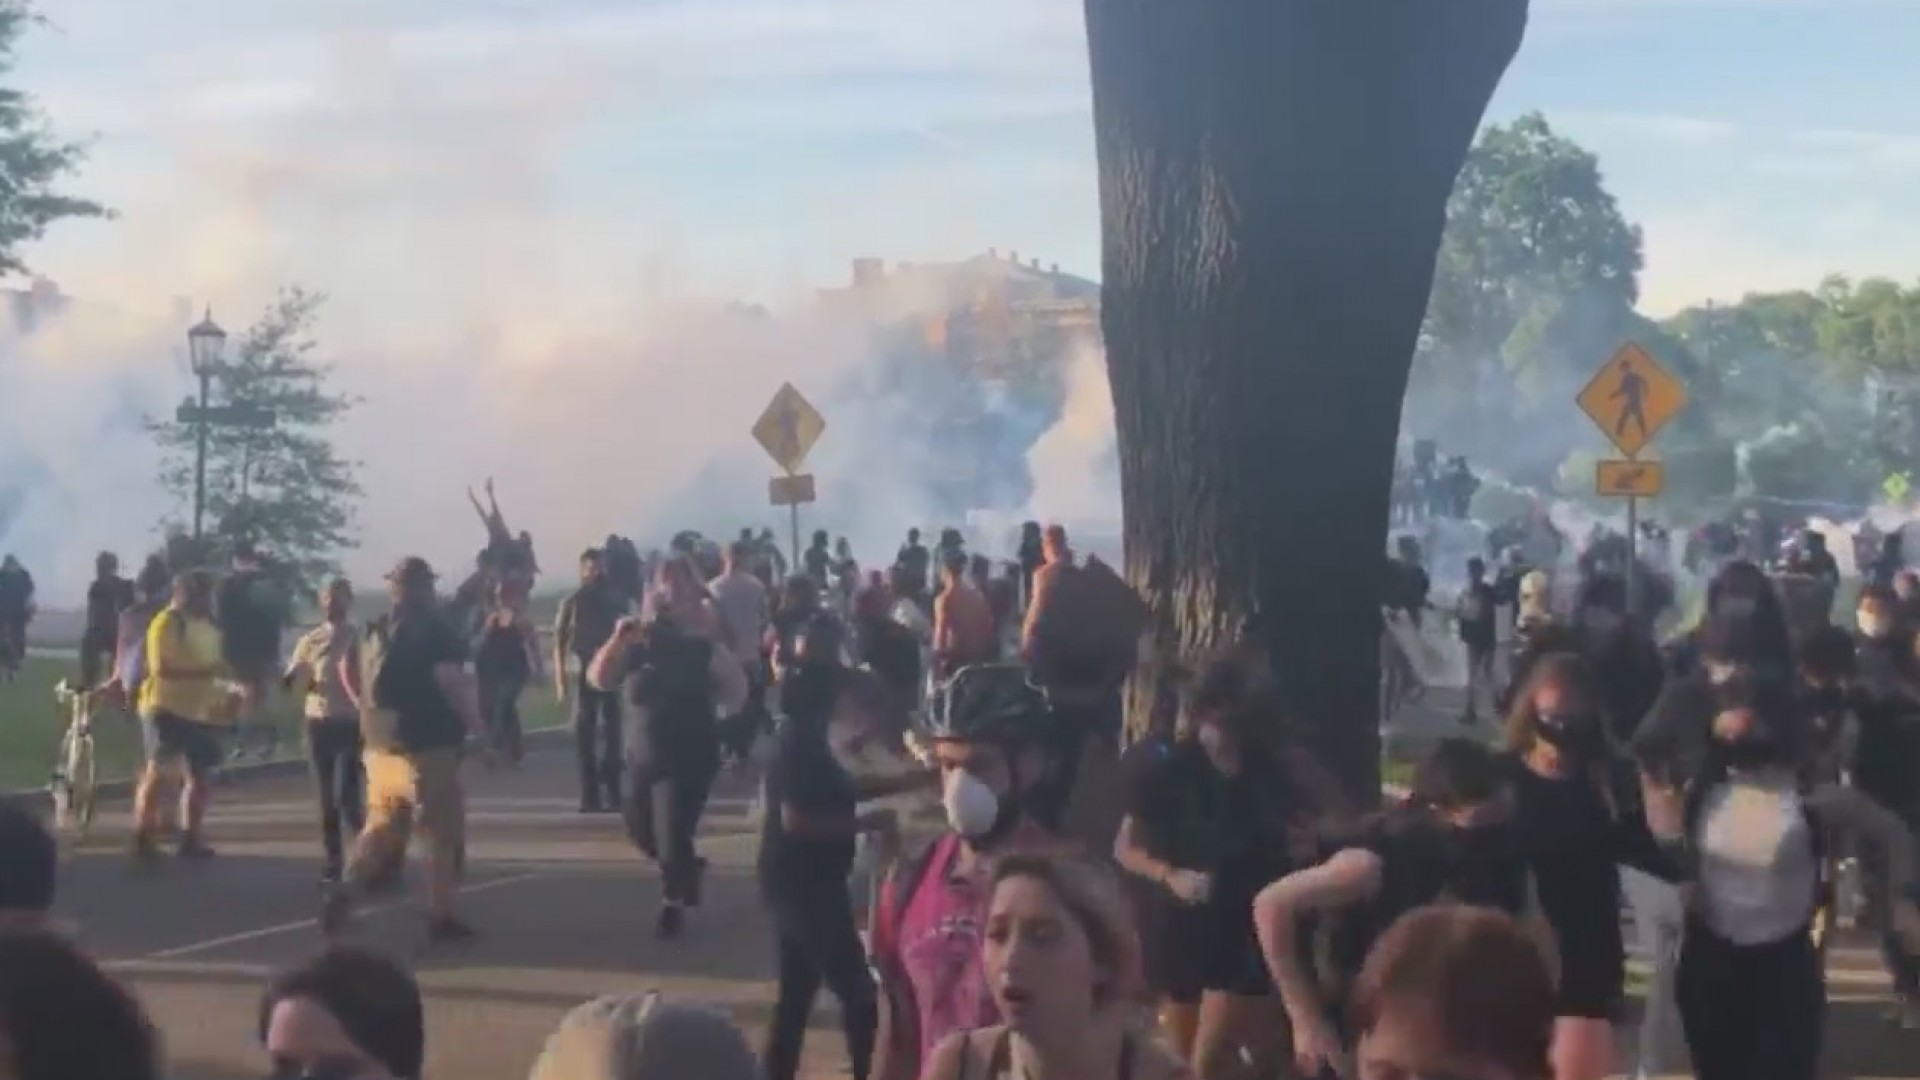 Protesters in Richmond tear-gassed